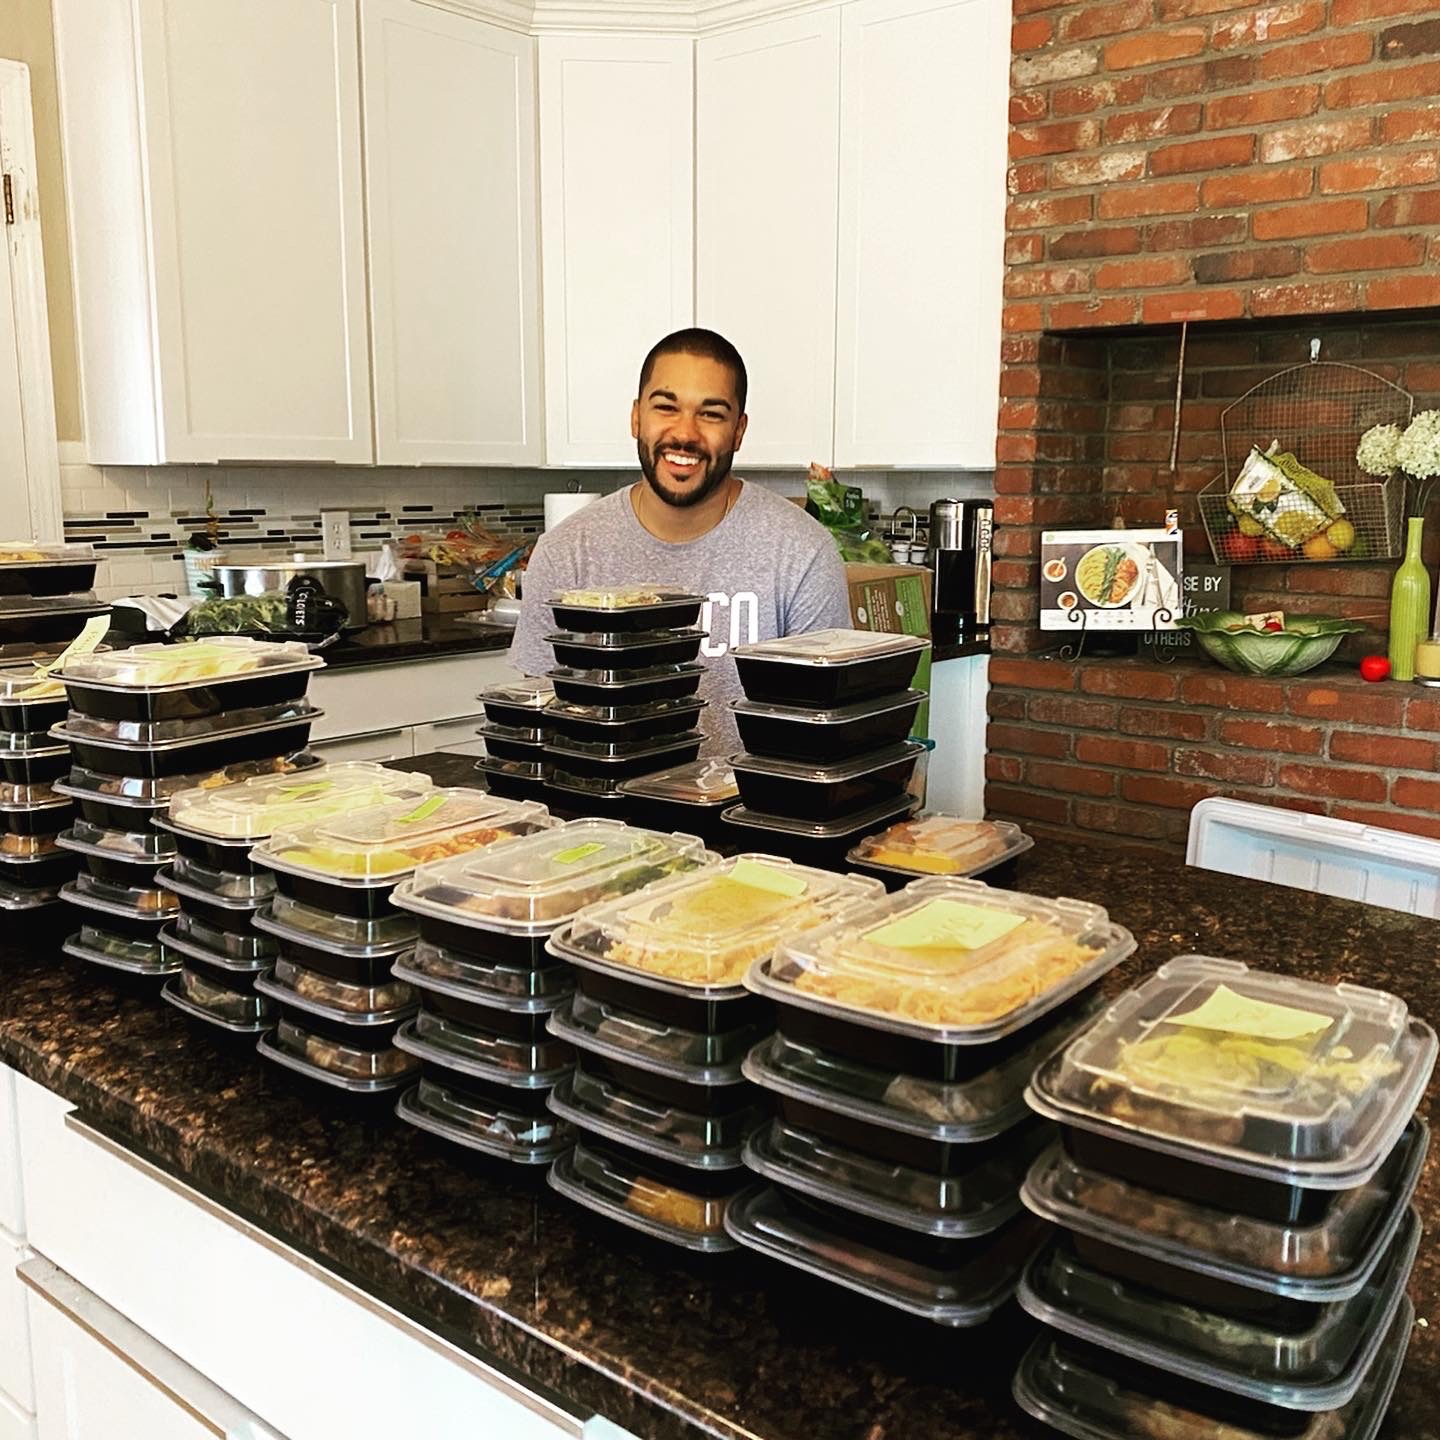 Matt Shulman, social studies teacher at BVNW, spends his Sunday mornings preparing meals for his small catering company.